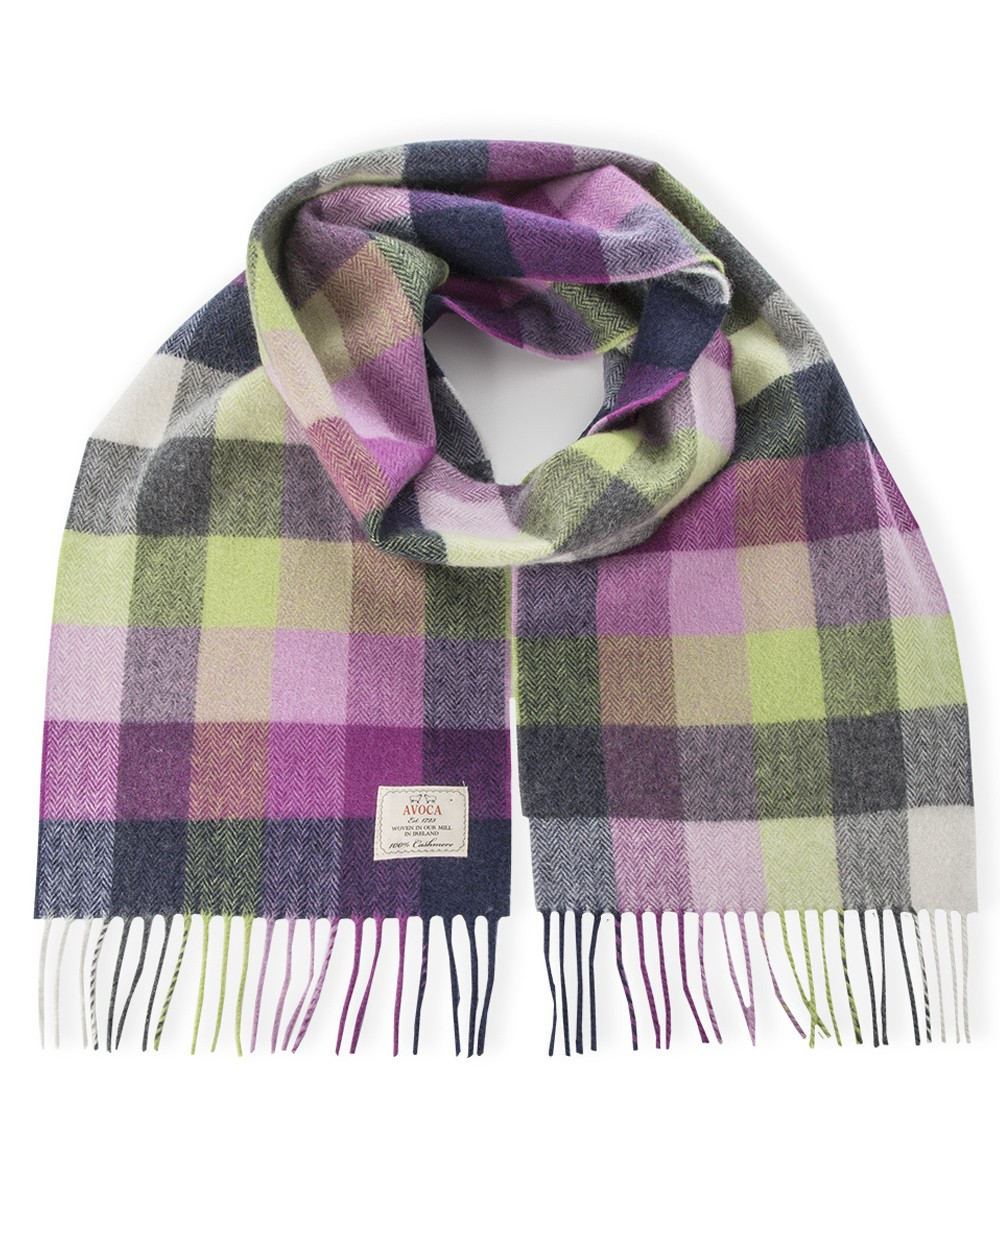 100% Cashmere Scarf in Pioneer